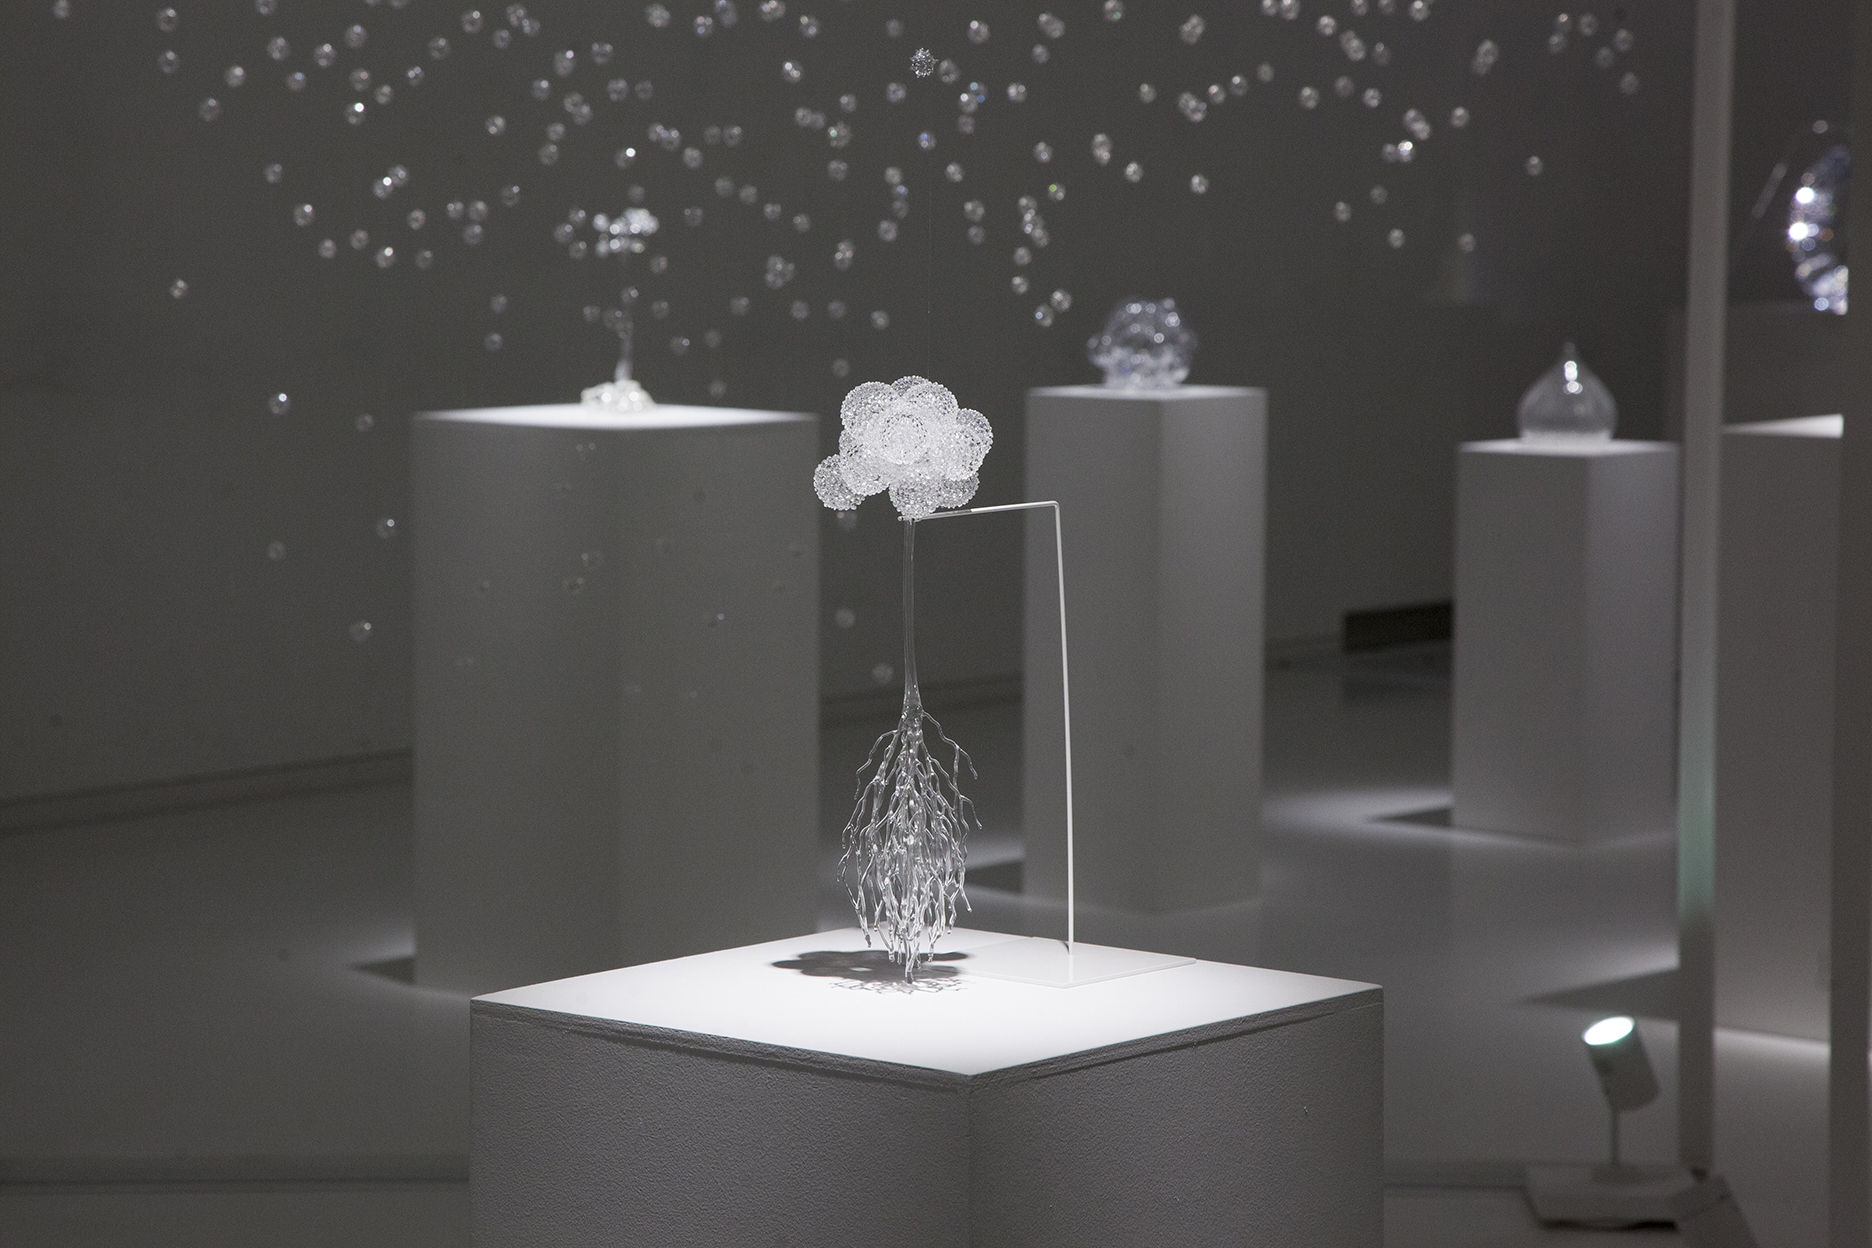 Soraa Brings out the Best in Glass at Tokyo Art Exhibit | Business Wire